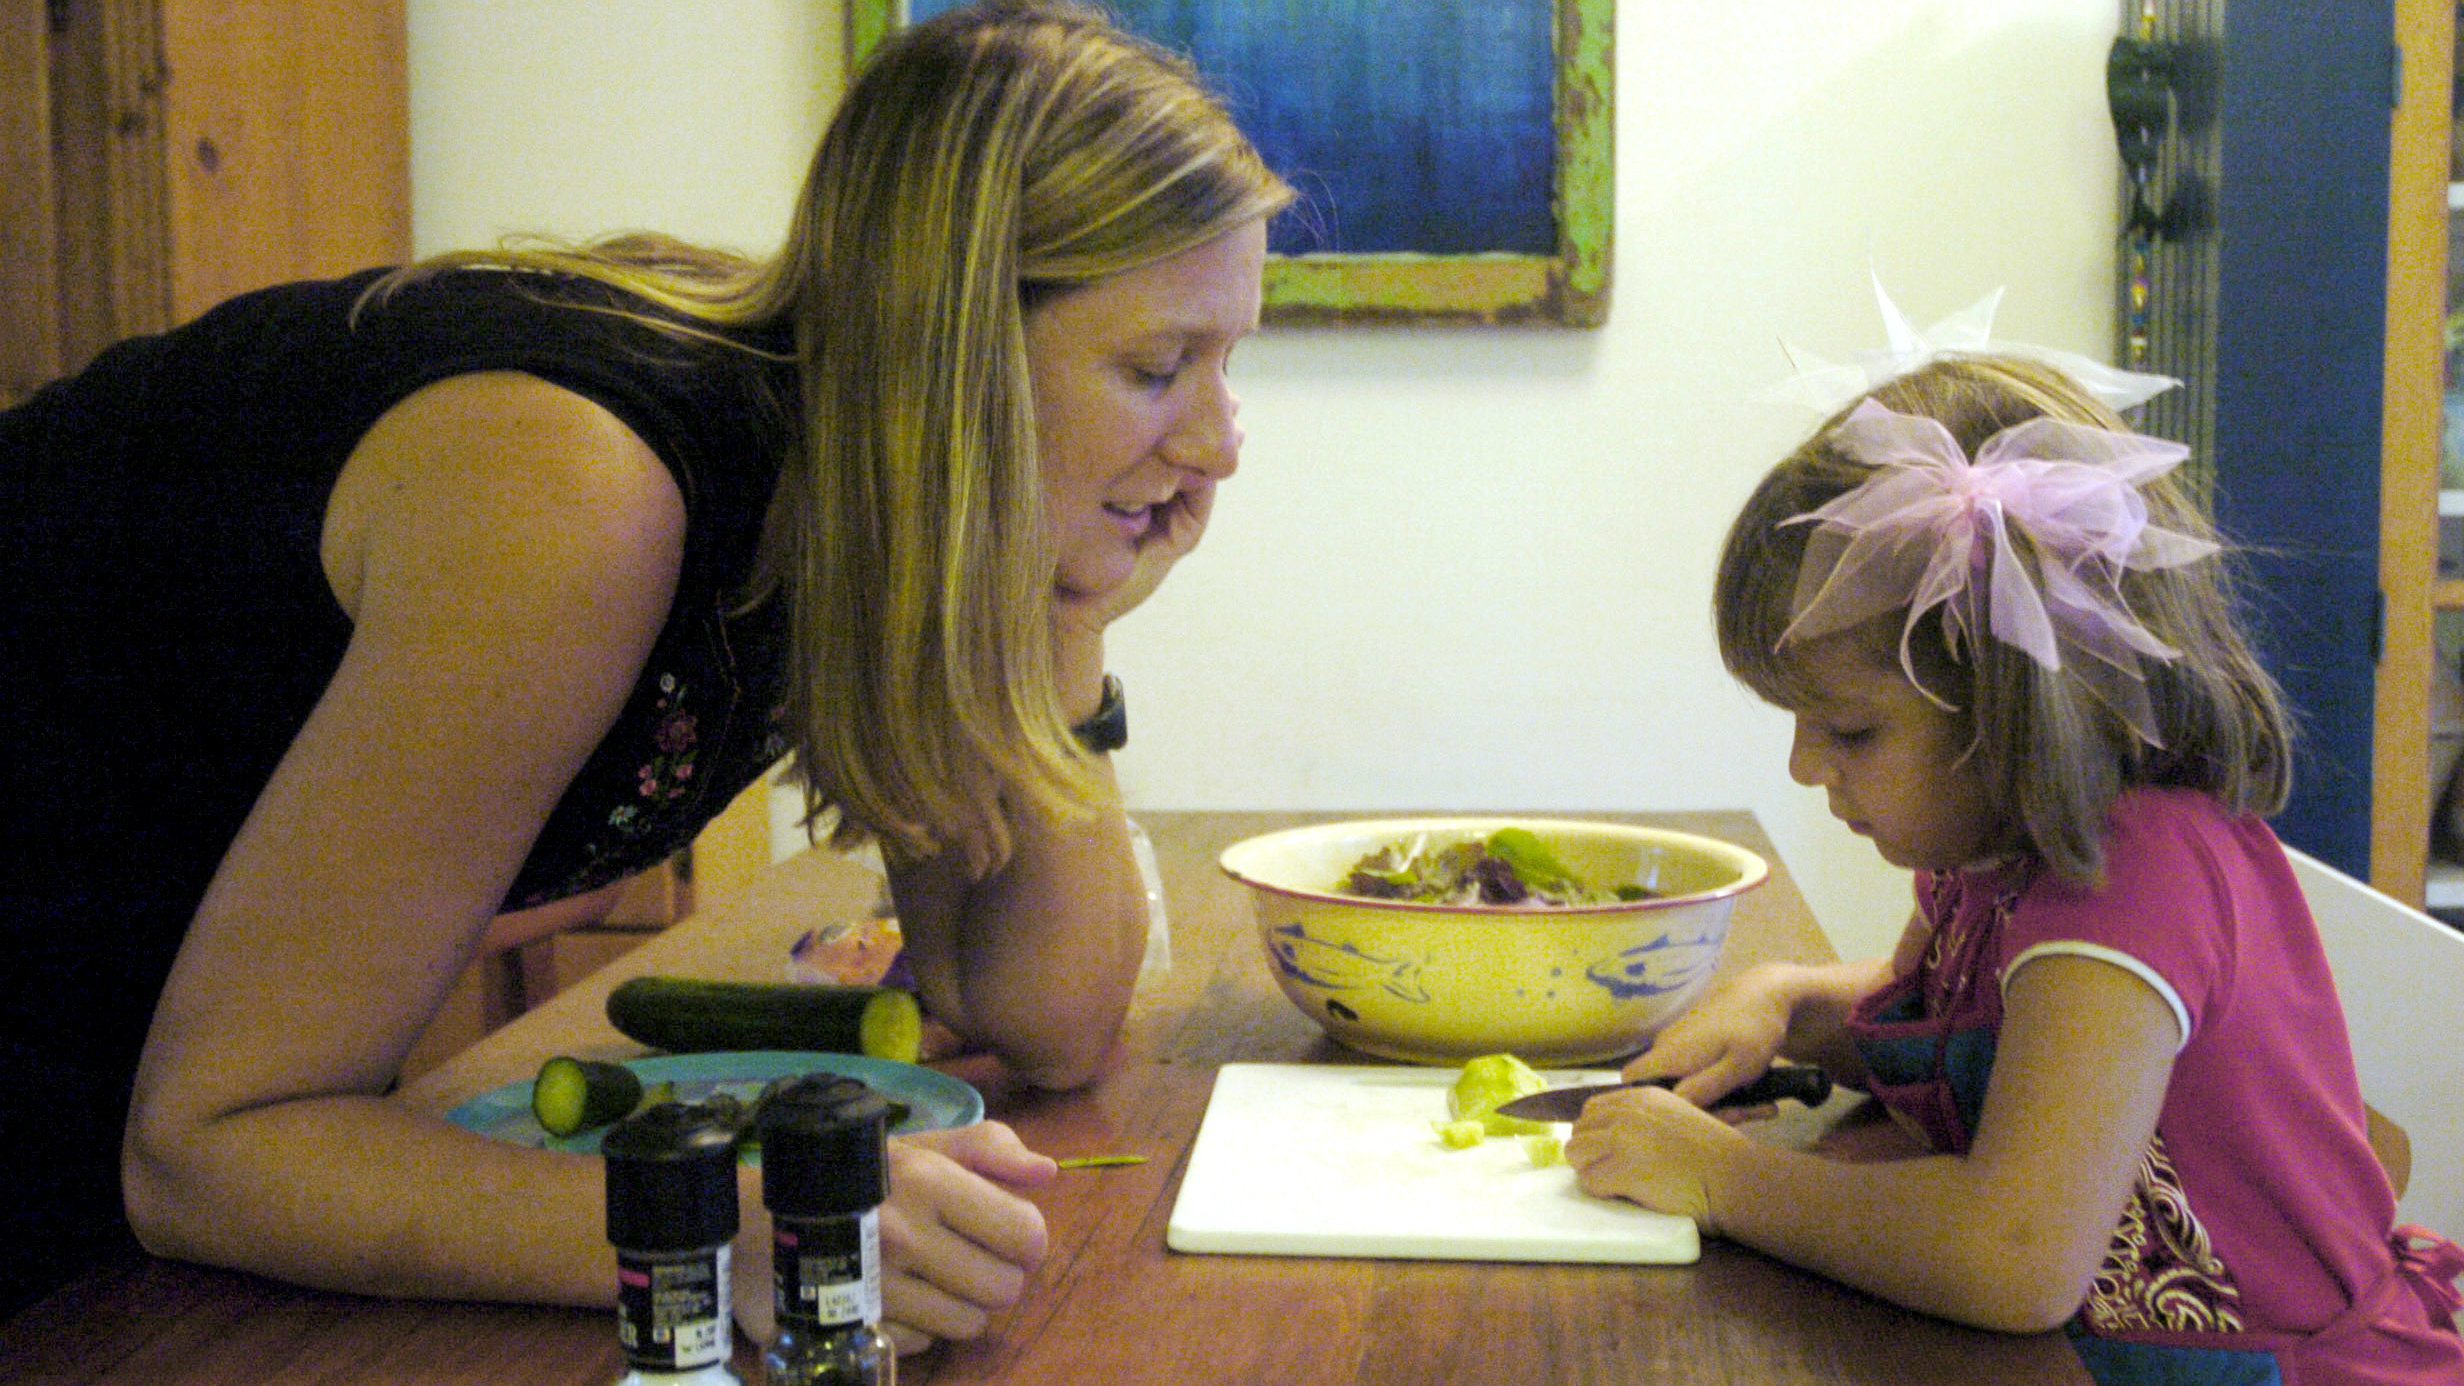 photo The Unhealthy Habit Kids Learn From Mom